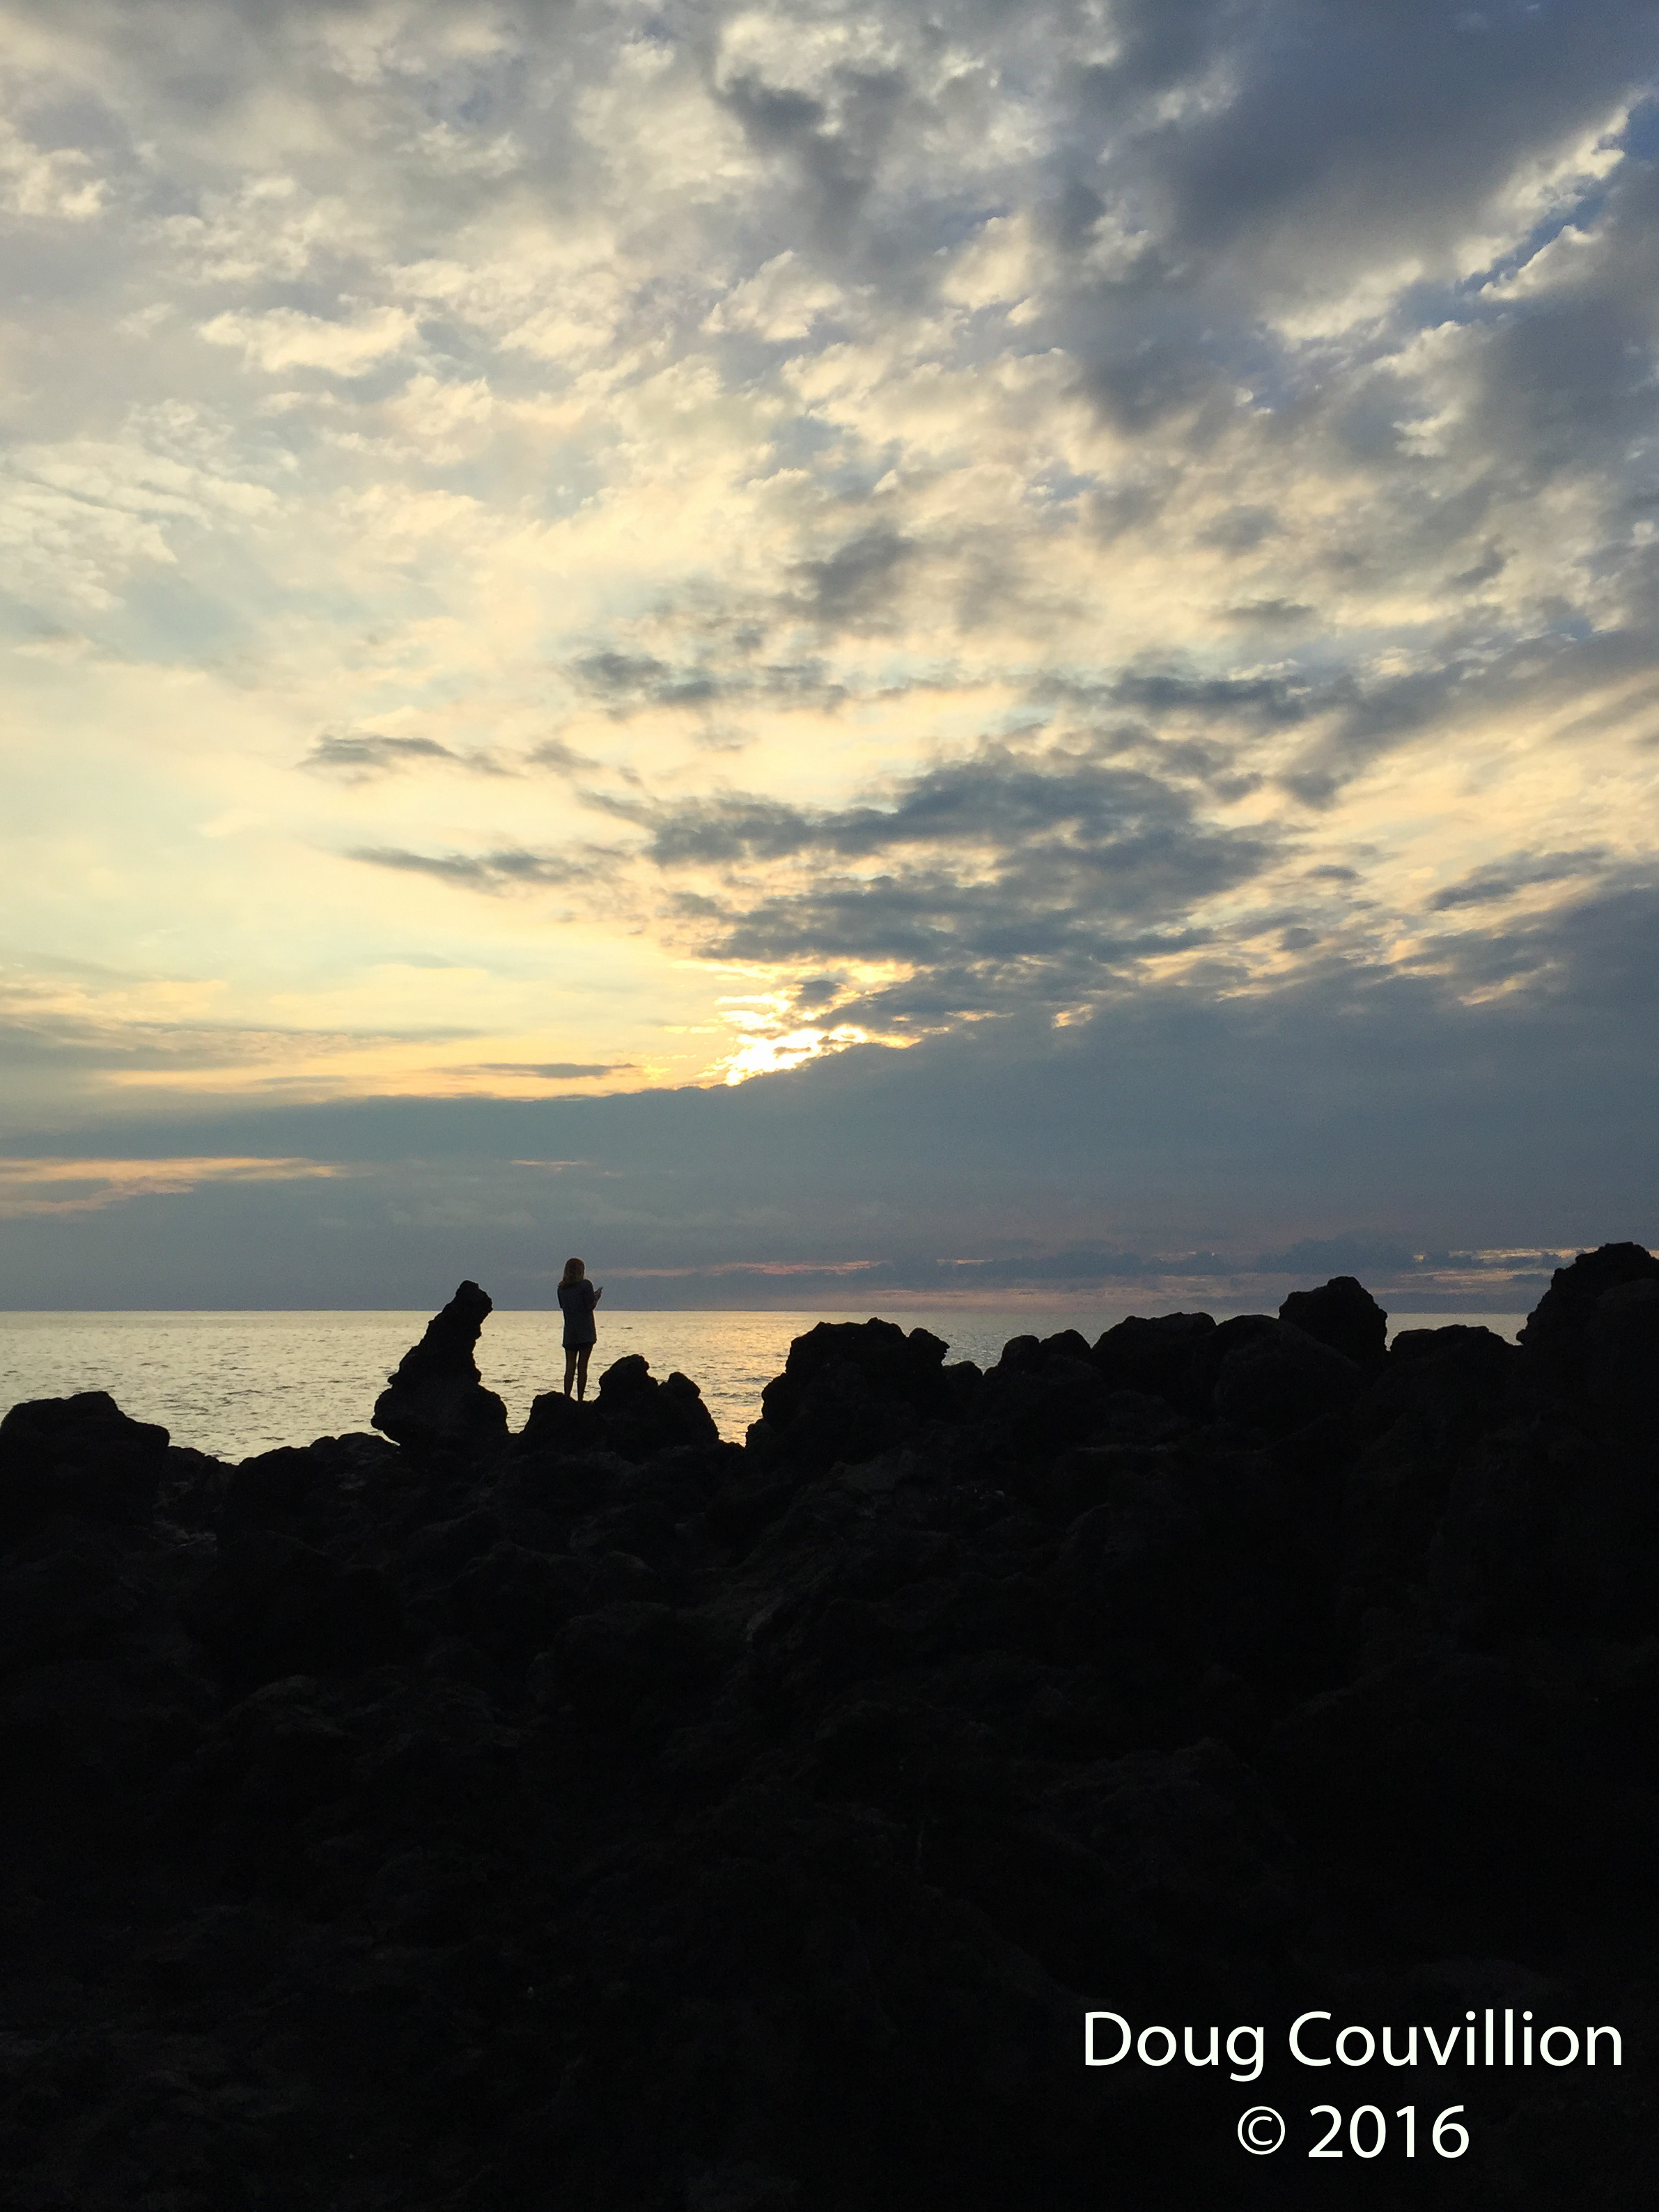 Photograph by Doug Couvillion: silhouette of a person standing on the Kona shore at sunset